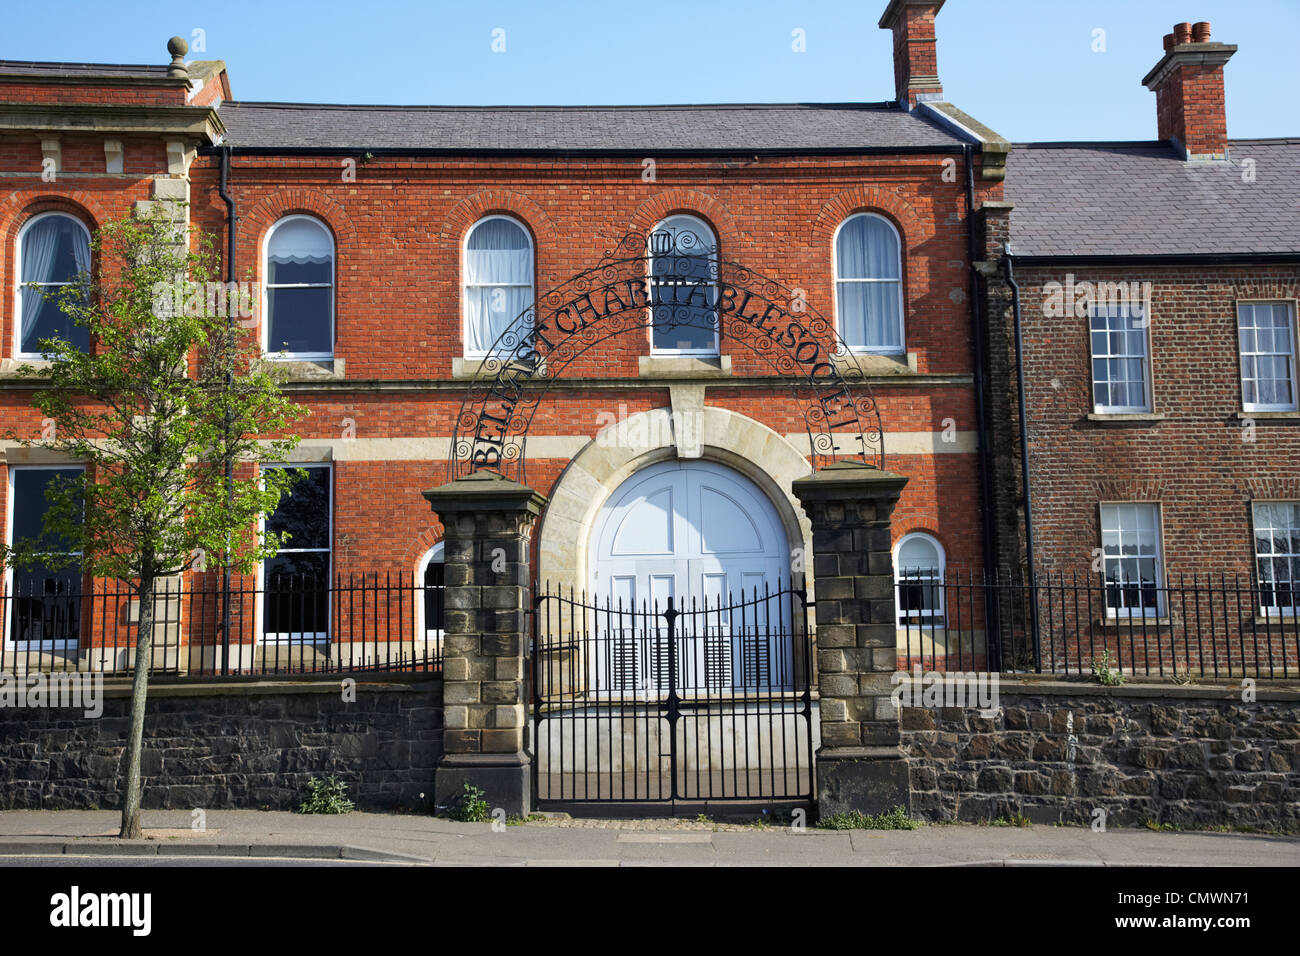 Belfast Charitable Society building clifton street Northern Ireland uk - Stock Image